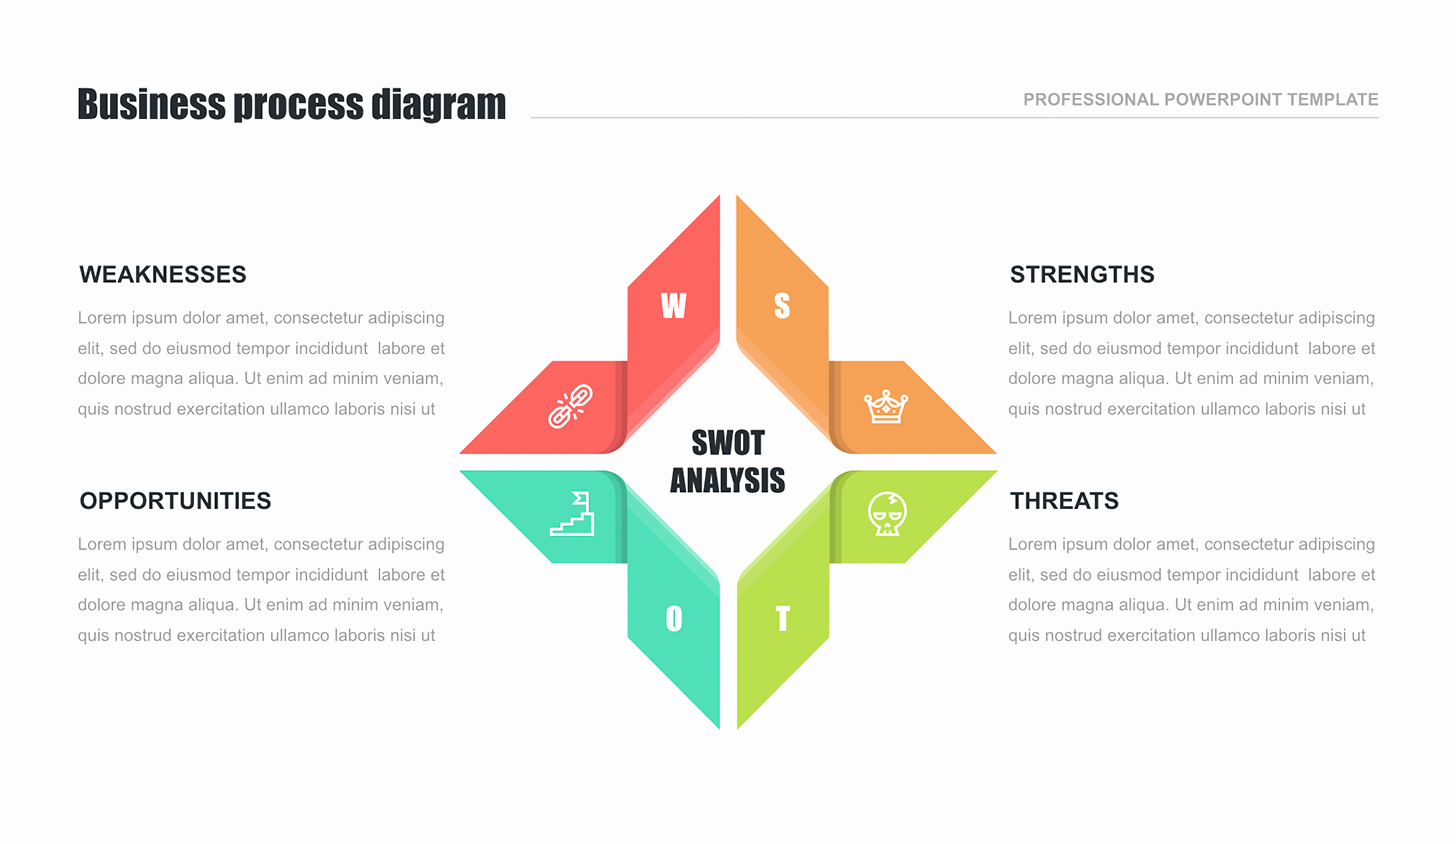 Swot Analysis Ppt Template Unique Swot Analysis Template Ppt Free Download now